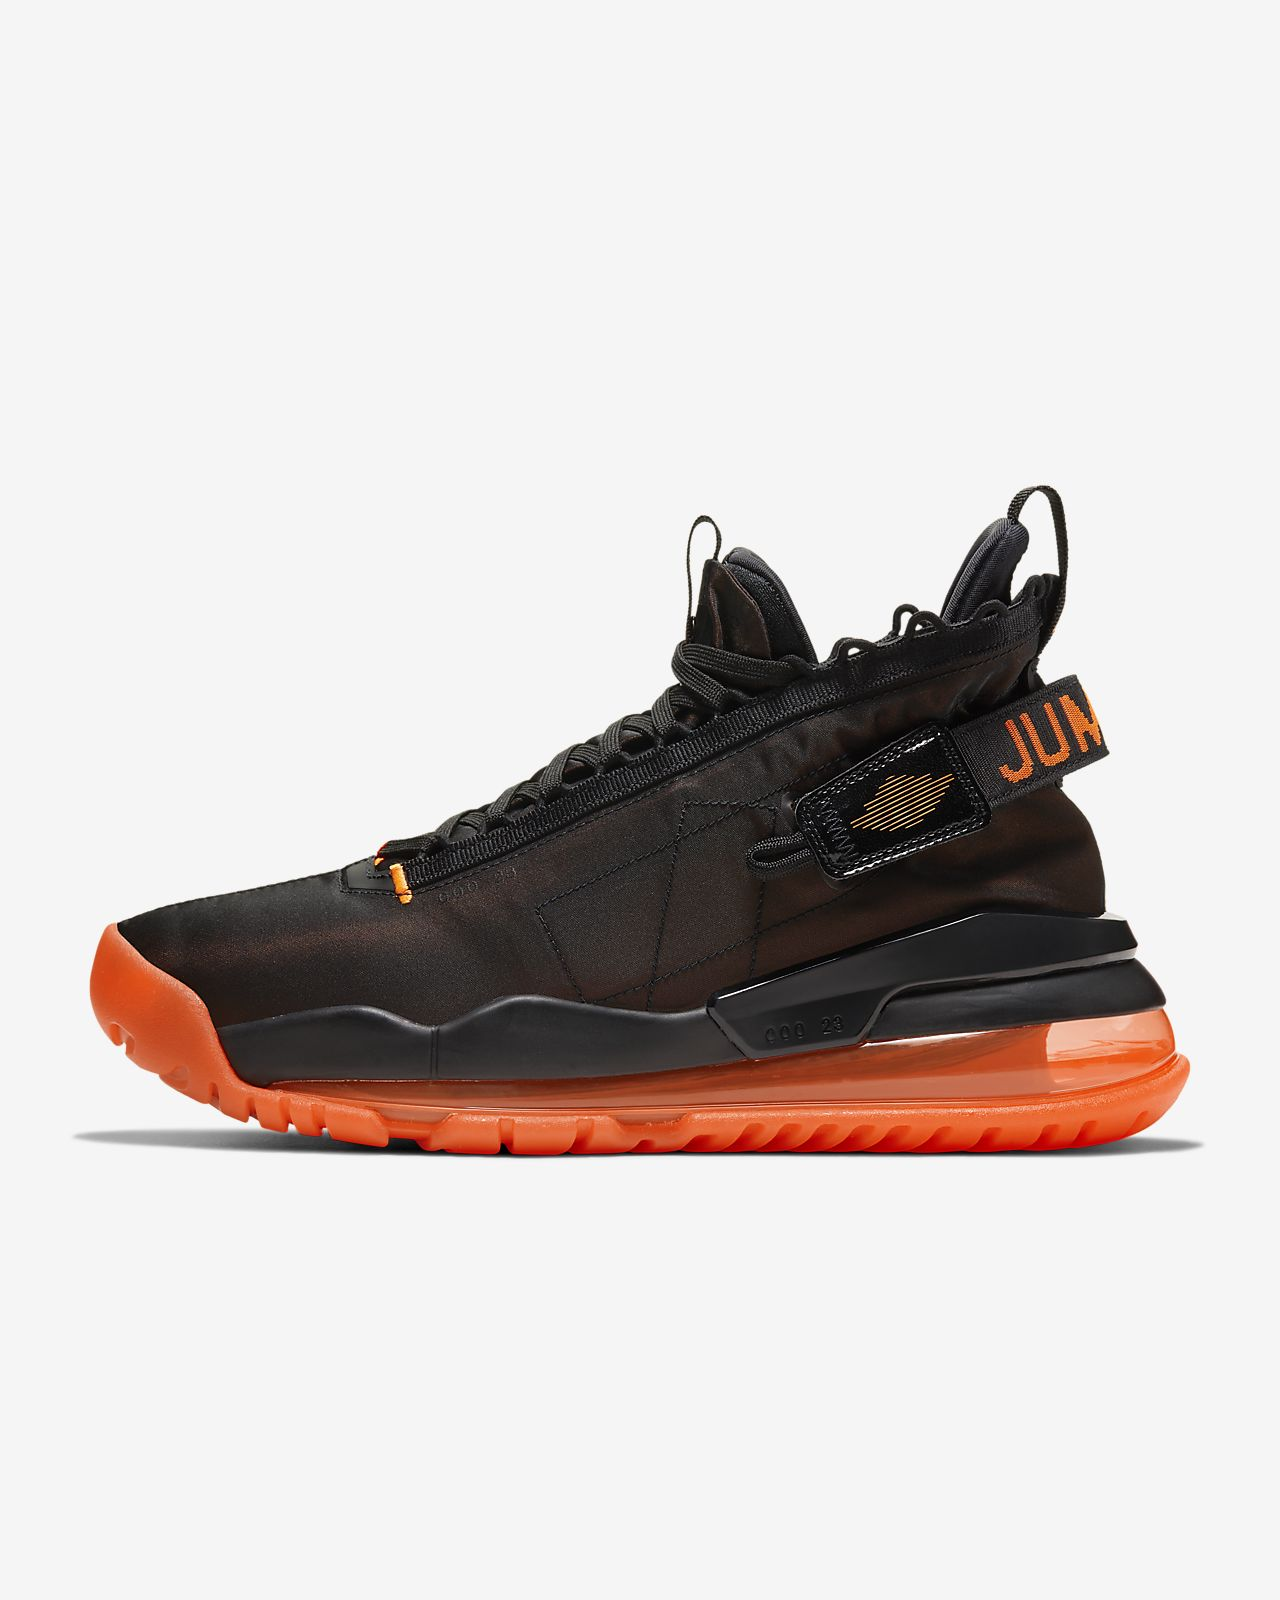 Nike Air Max 720 Sneaker in Gold Gold online kaufen